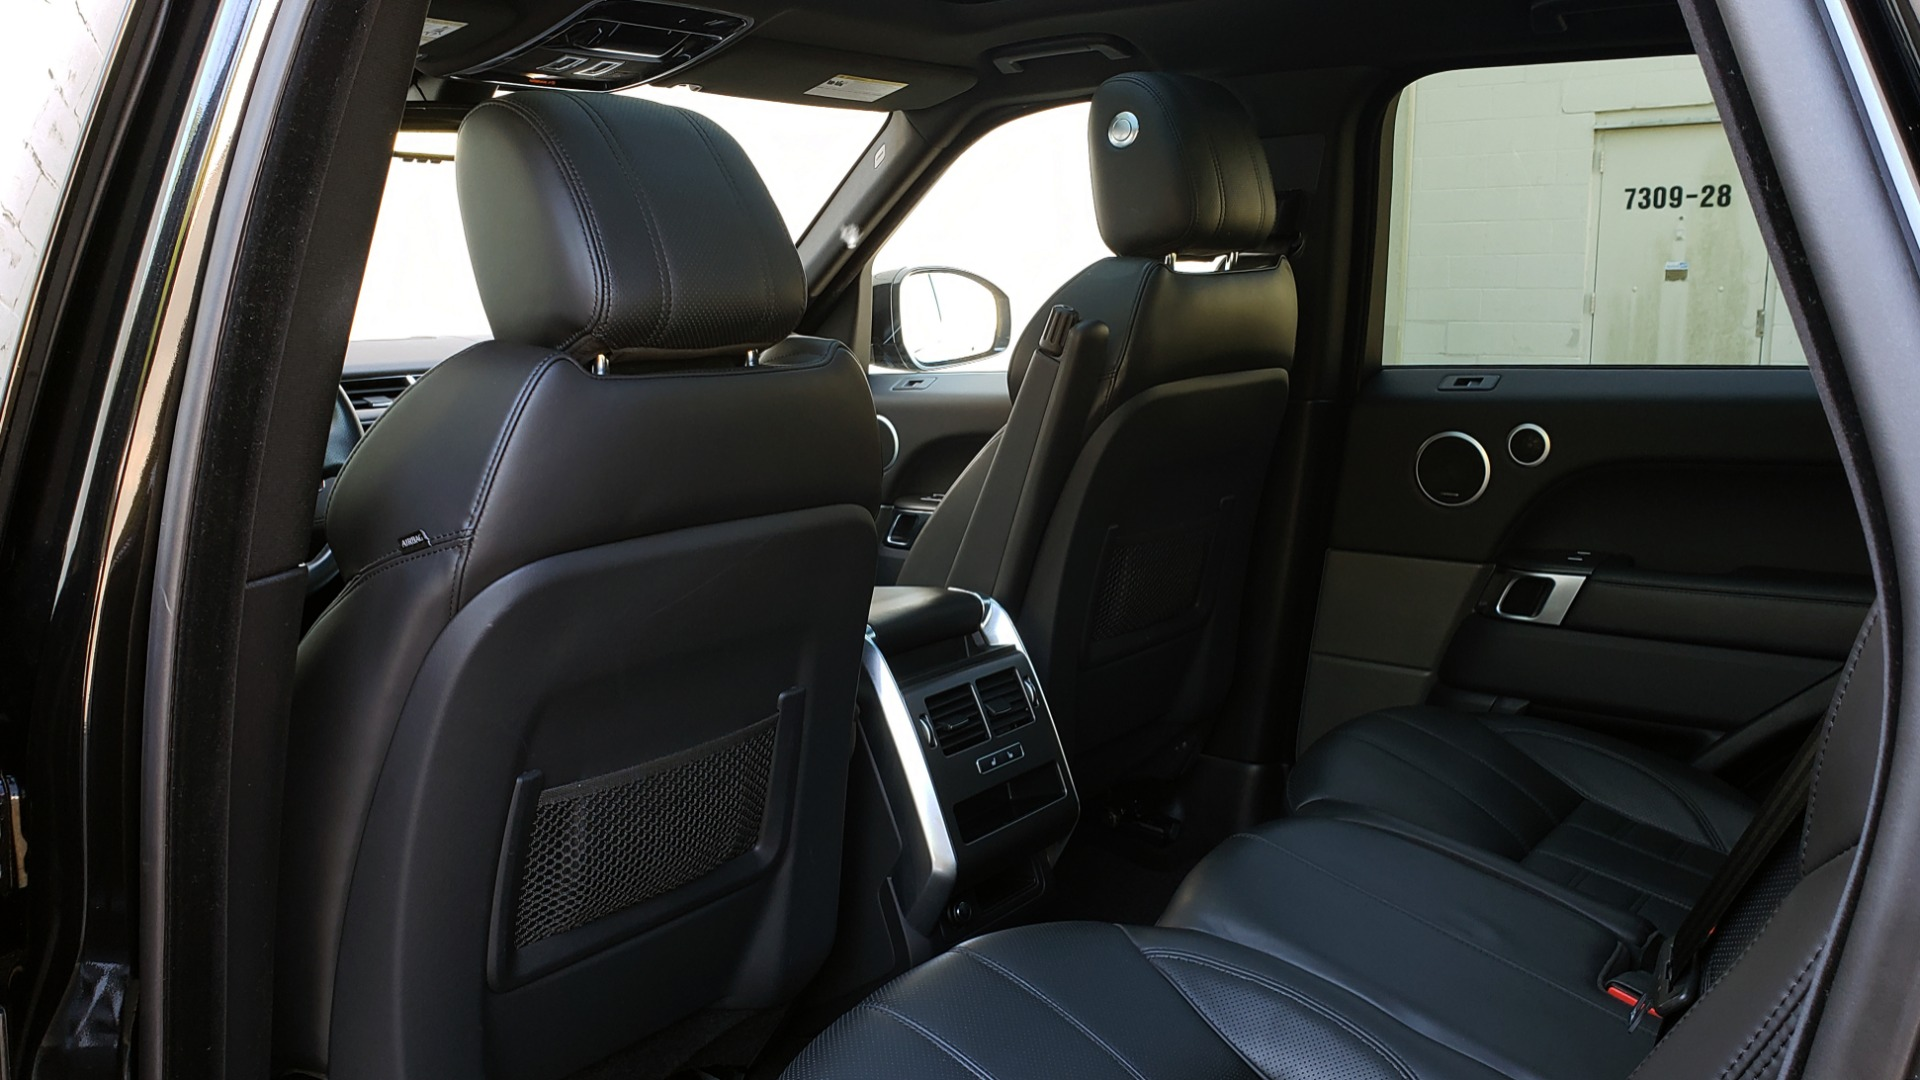 Used 2016 Land Rover RANGE ROVER SPORT SC V6 HSE HST / NAV / PANO-ROOF / MERIDIAN / REARVIEW for sale Sold at Formula Imports in Charlotte NC 28227 60